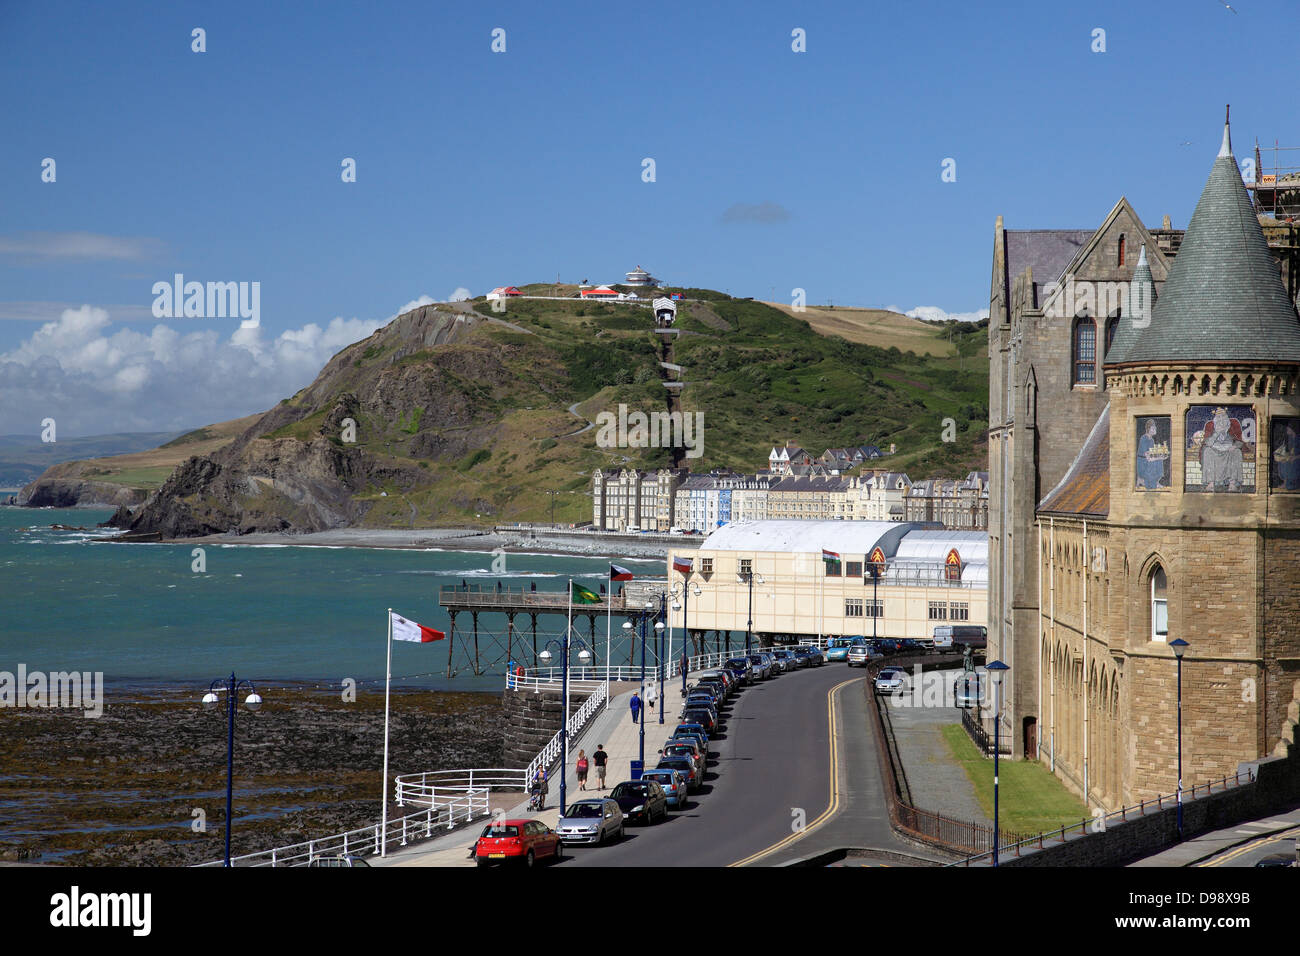 Old College, Aberystwyth, built in 1865, on the right, the pier, centre, and Constitution Hill in the background - Stock Image